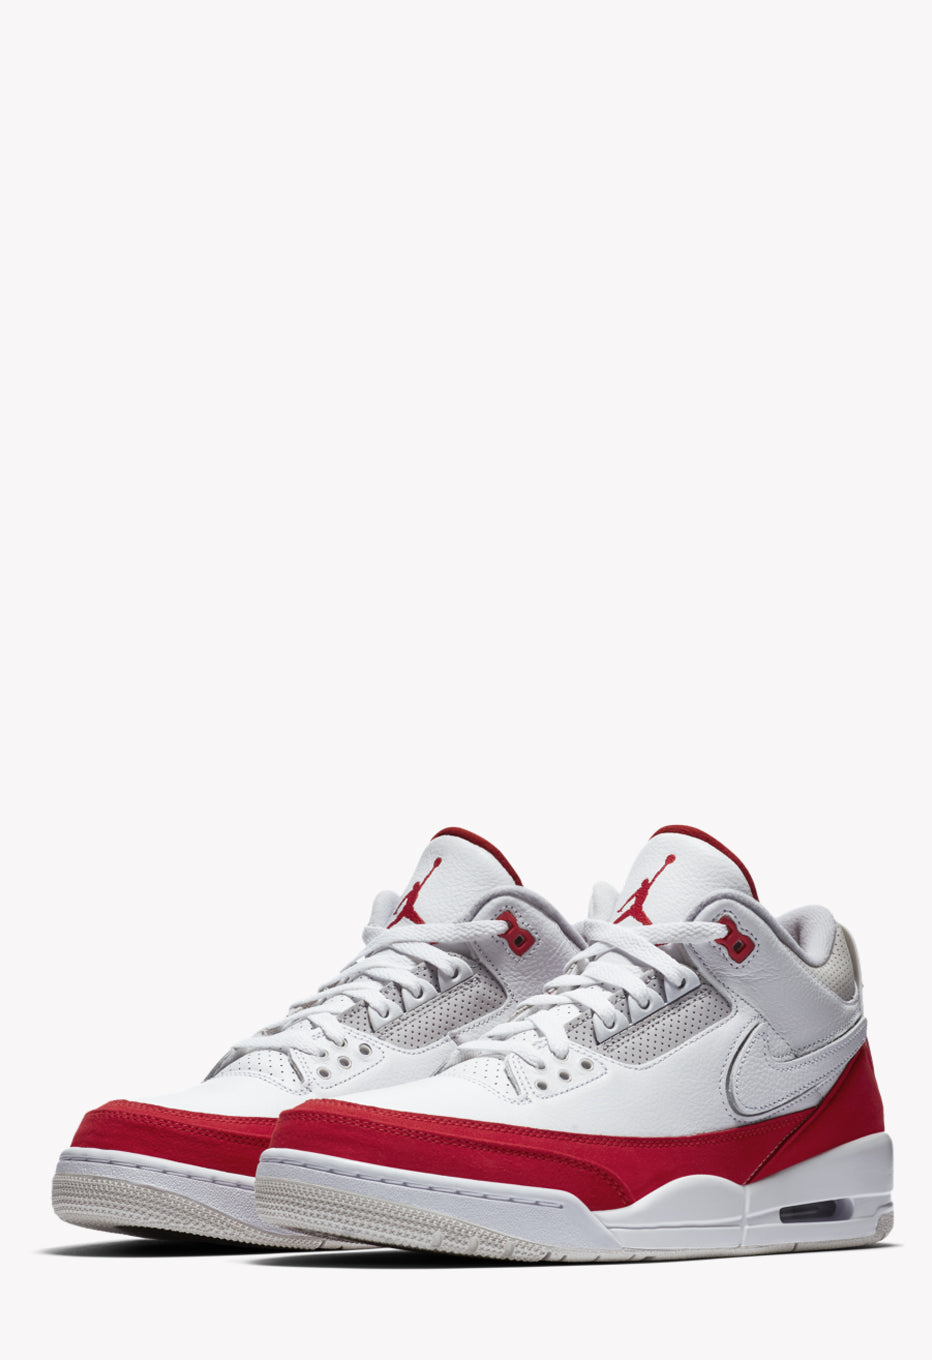 the best attitude a2792 fbe0b NIKE aIR jORDAN 3 RETRO TH